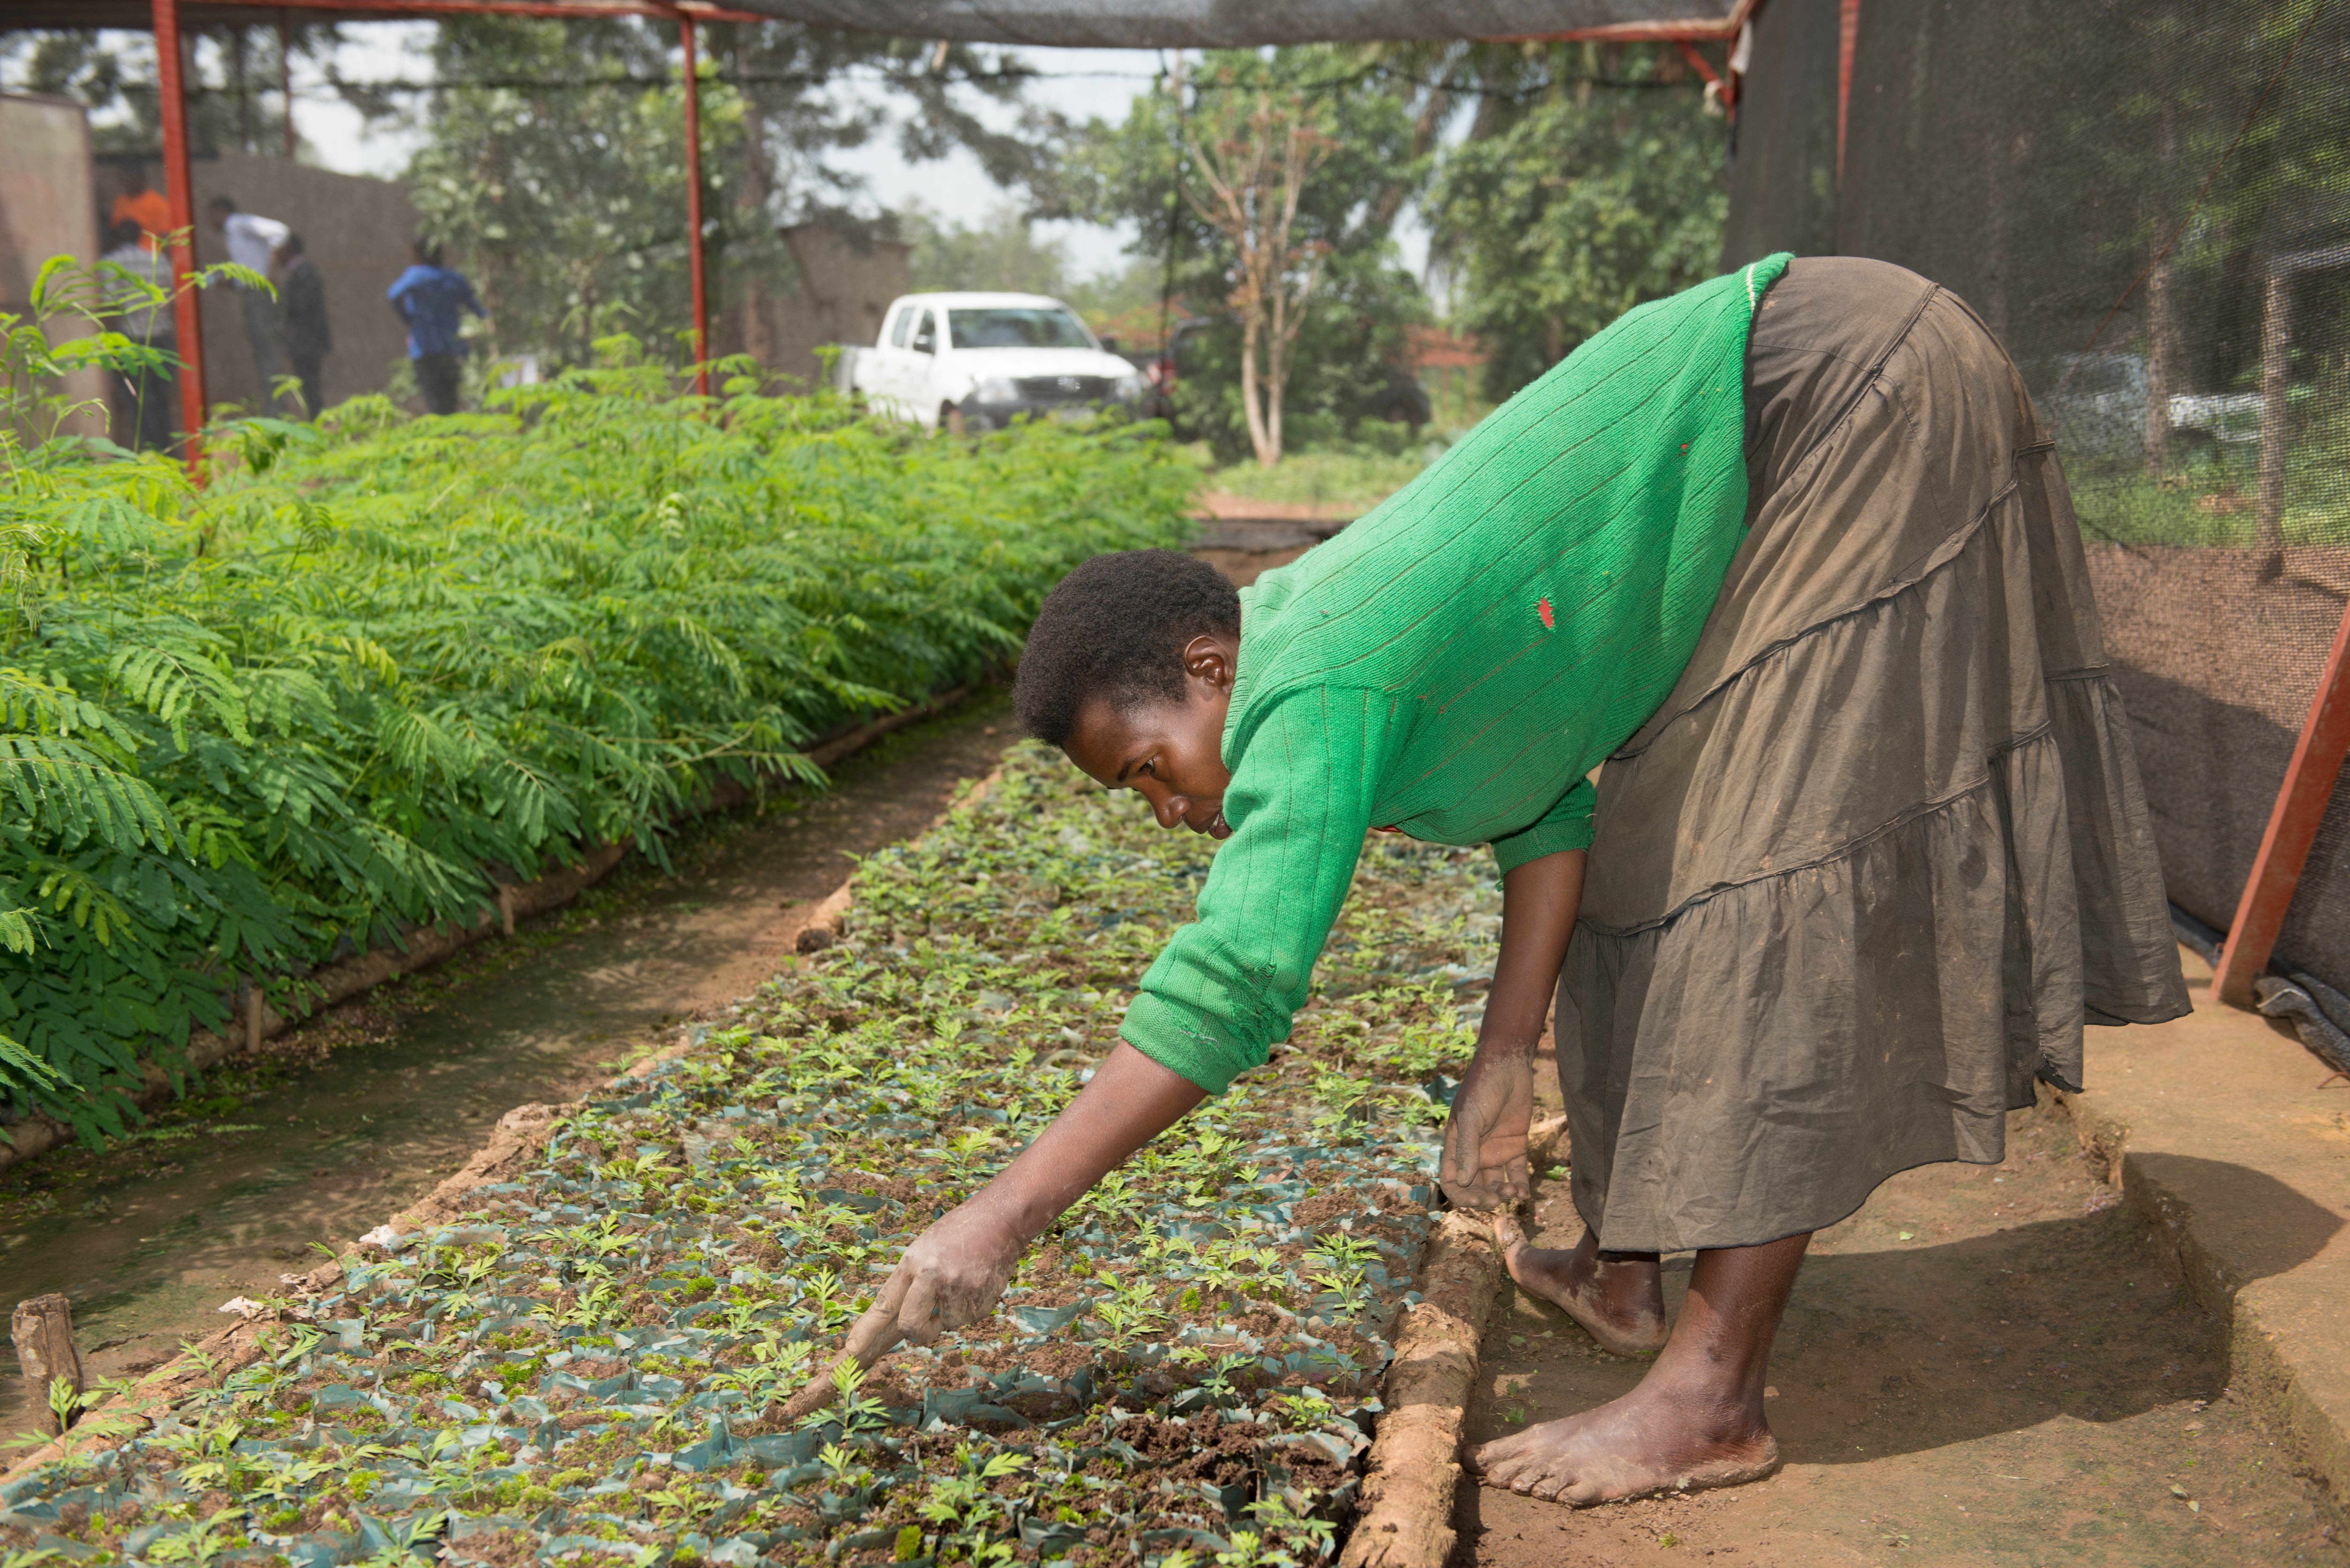 Farmers access quality seedlings and training in tree growing and management on farms from rural resource centres. Photo: World Agroforestry